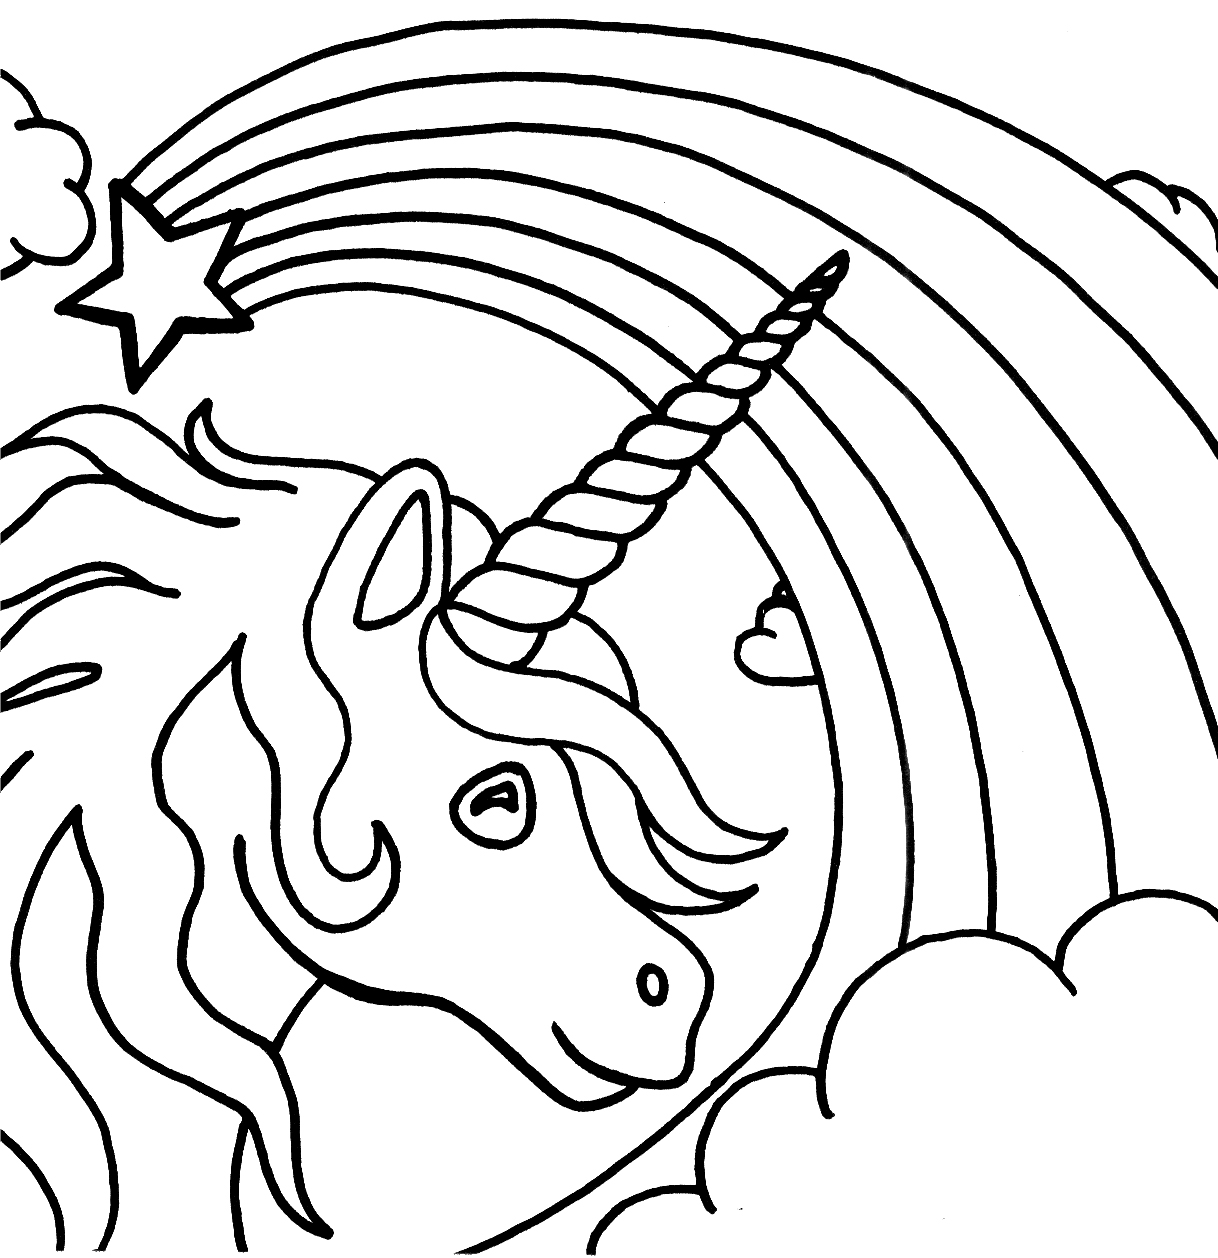 unicorn coloring page to print,printable,coloring pages